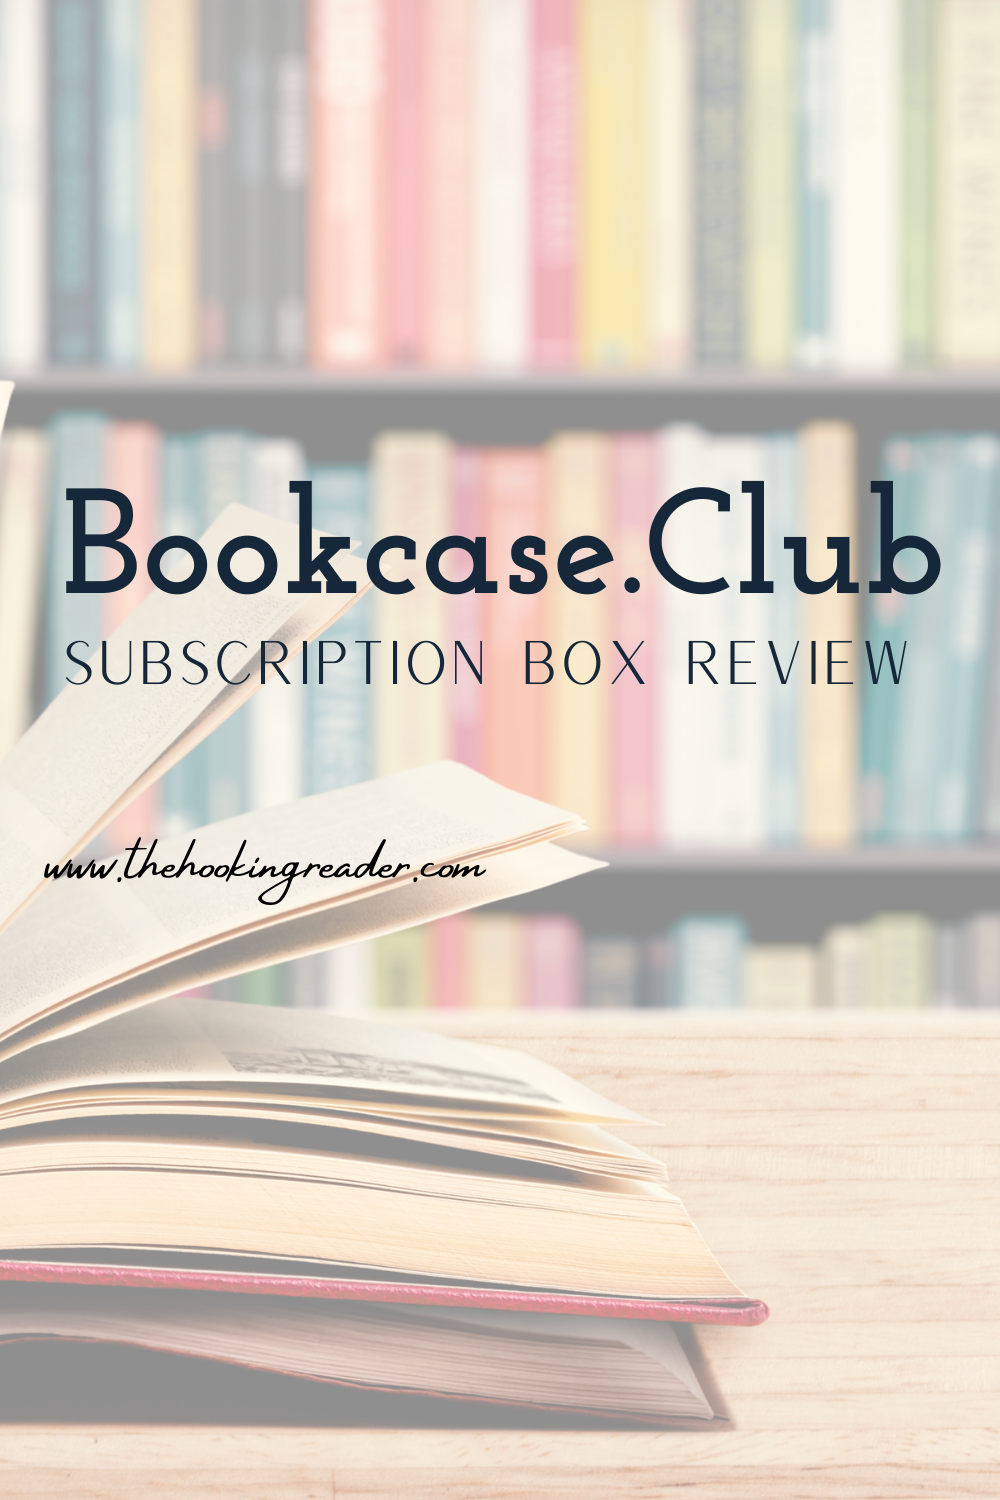 Bookcase.Club Subscription Review